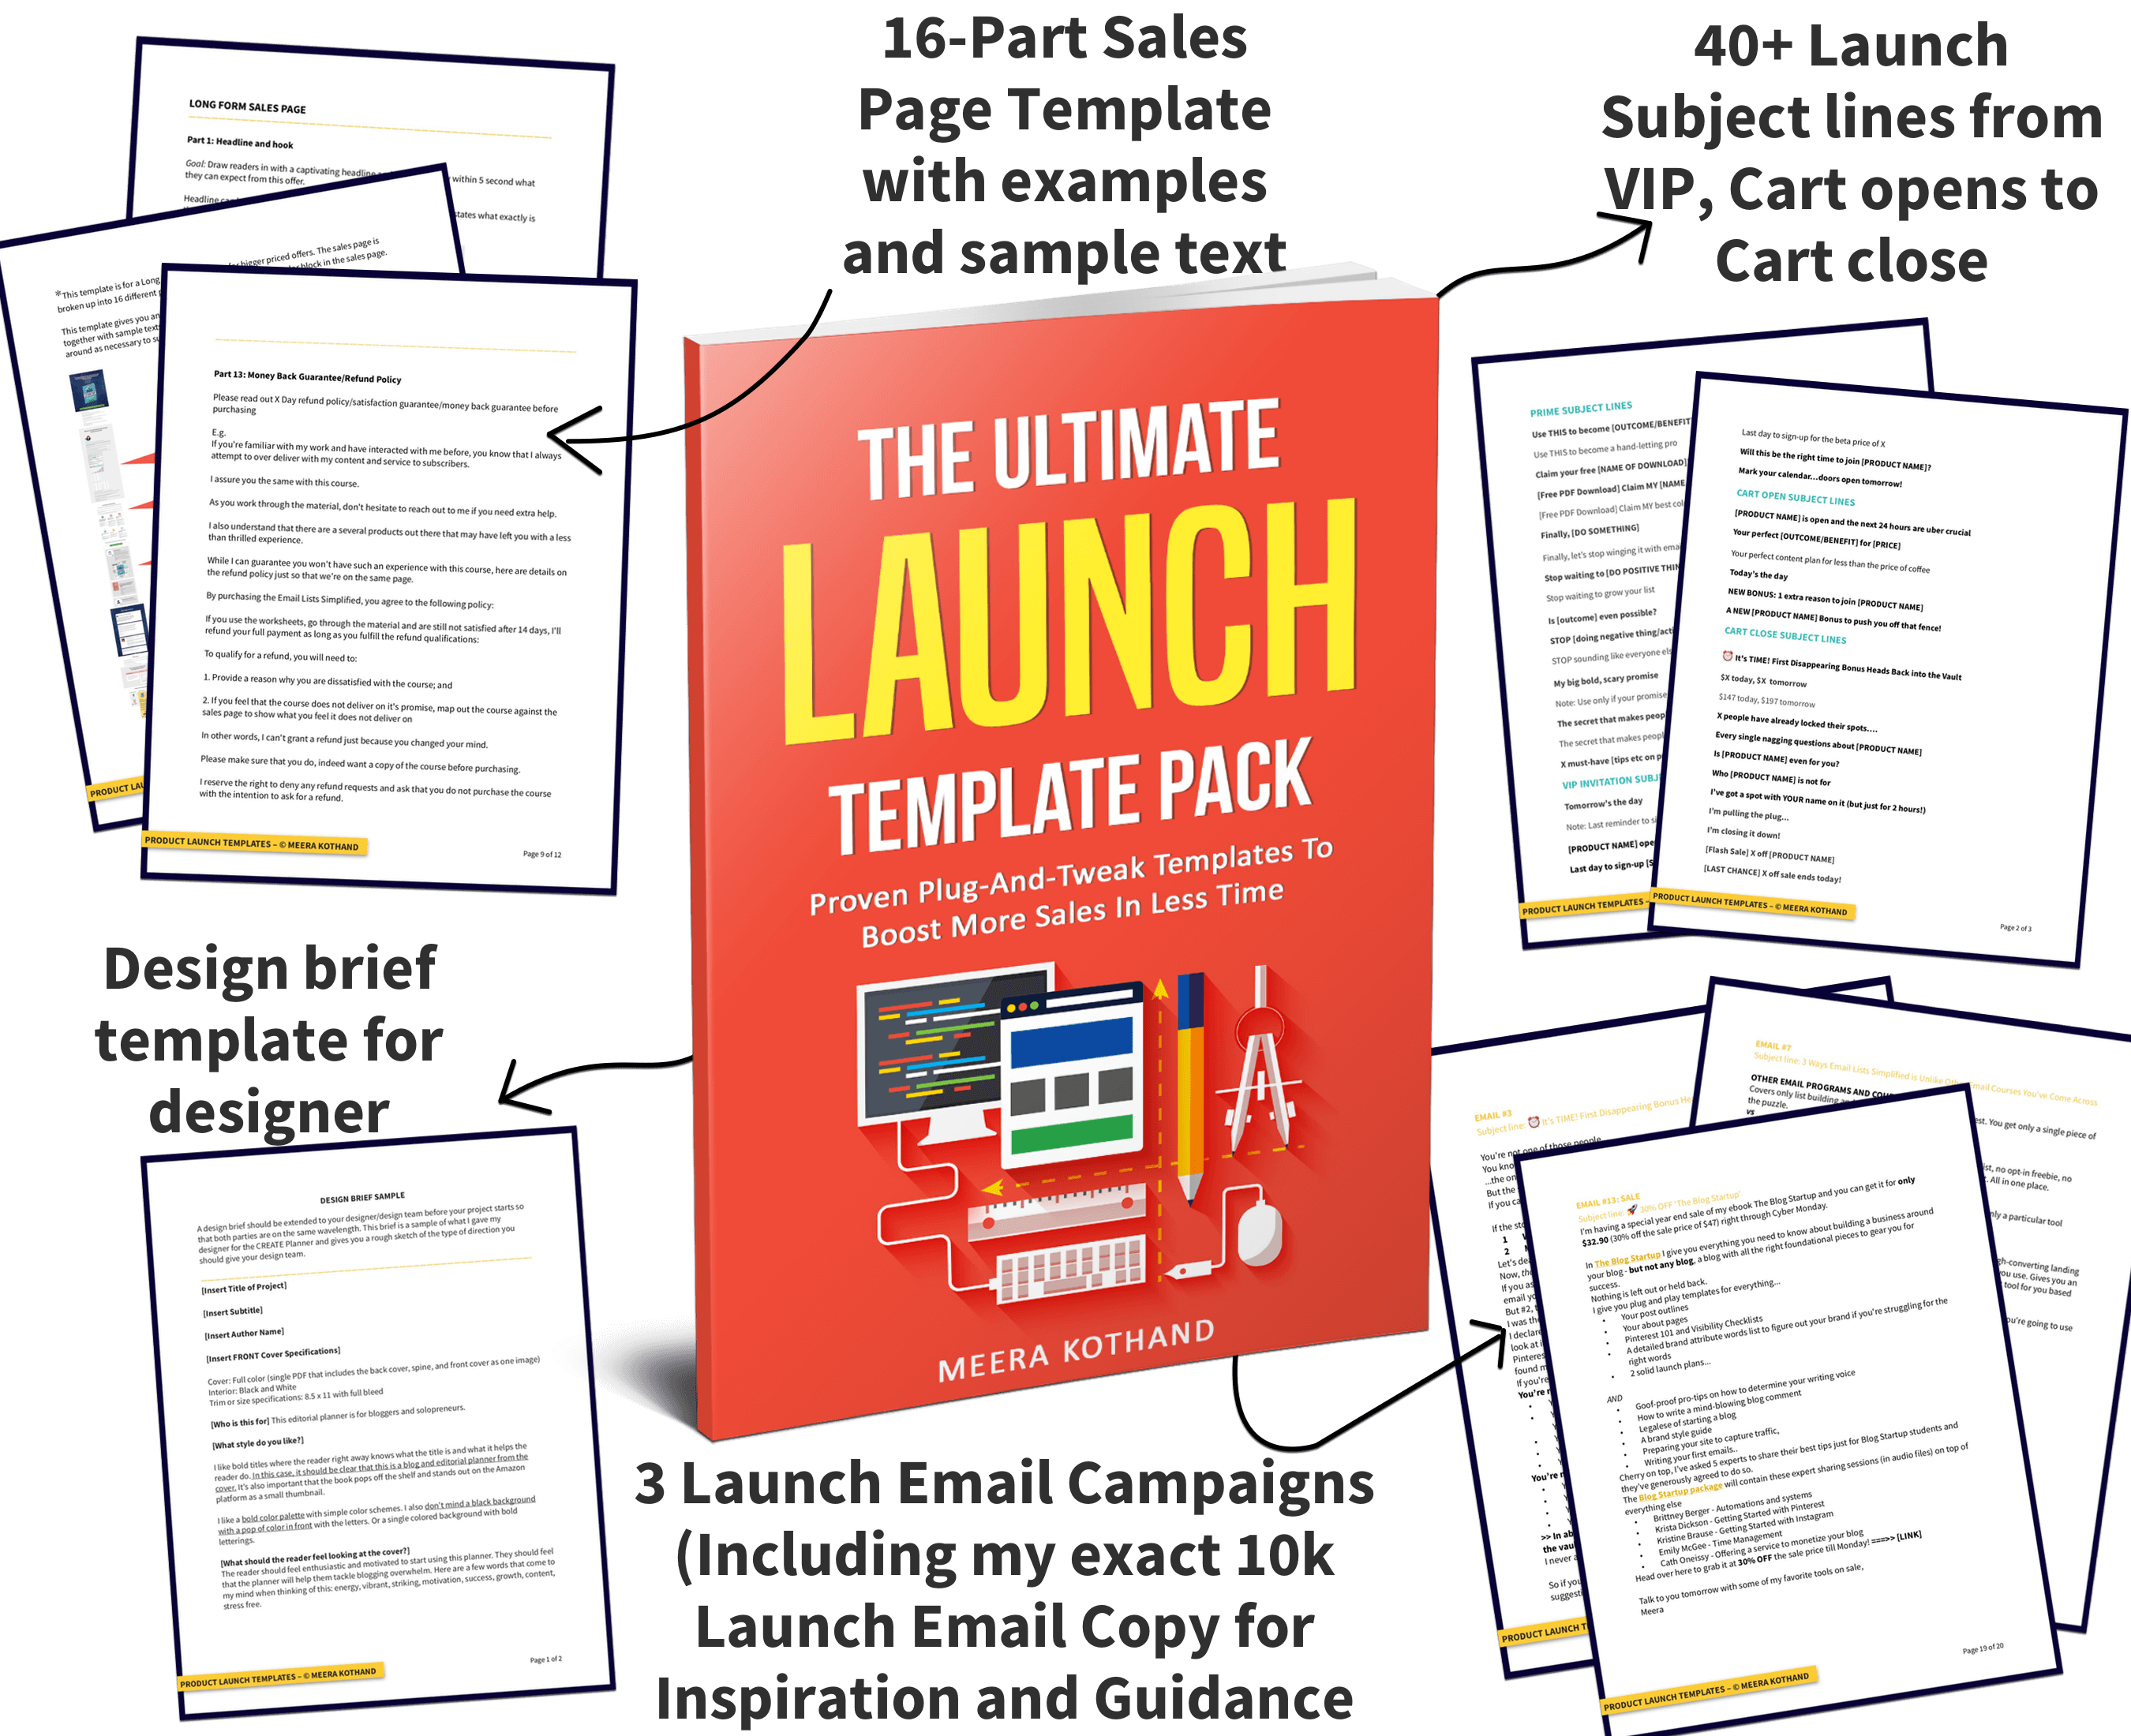 Product Launch Template Pack Meerakothand